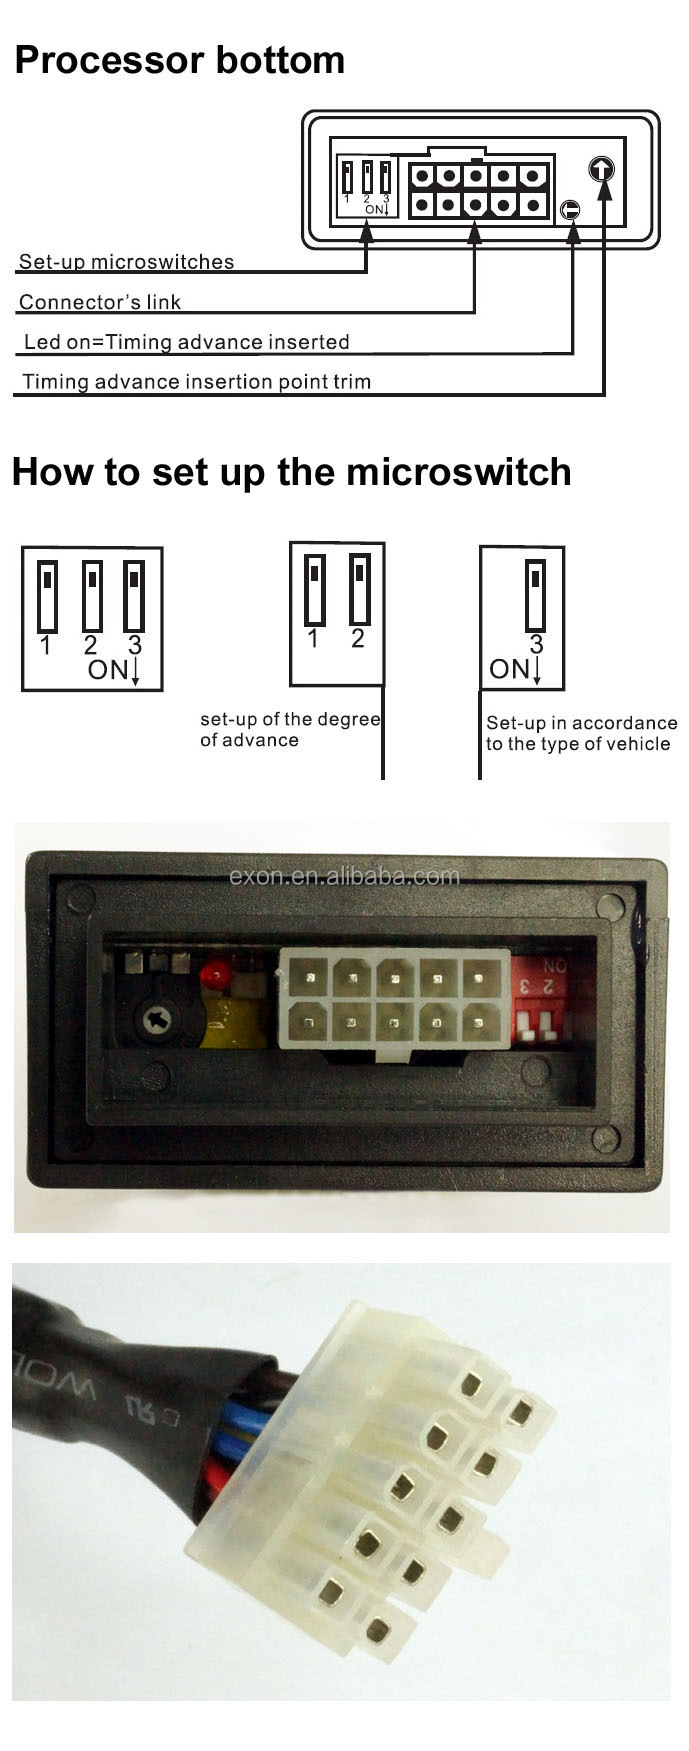 Cng Timing Advance Processor Aeb510  Stap100 For Car Fuel